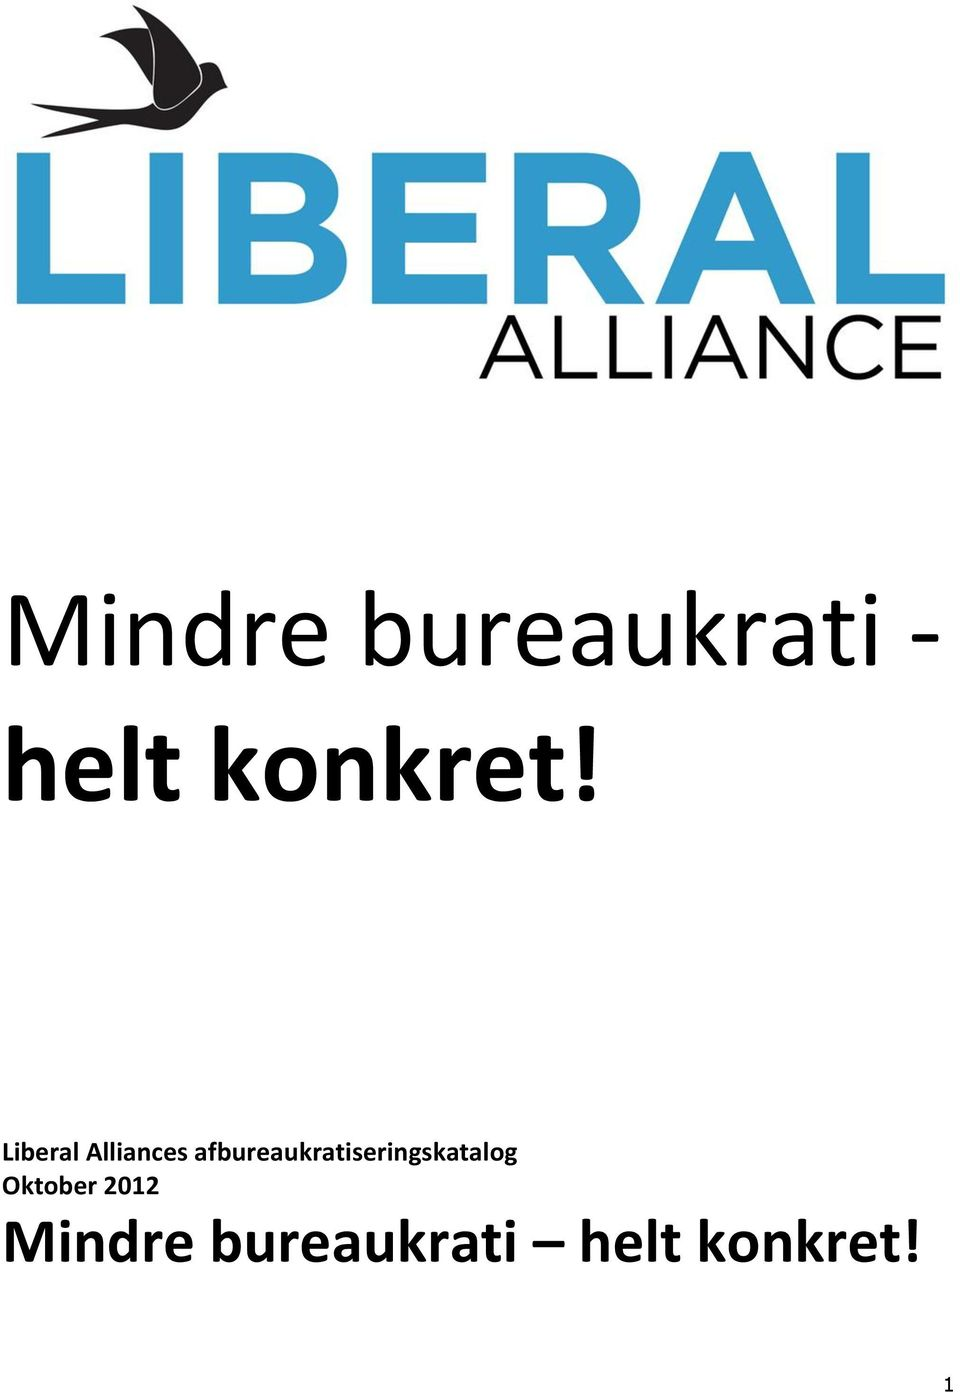 Liberal Alliances